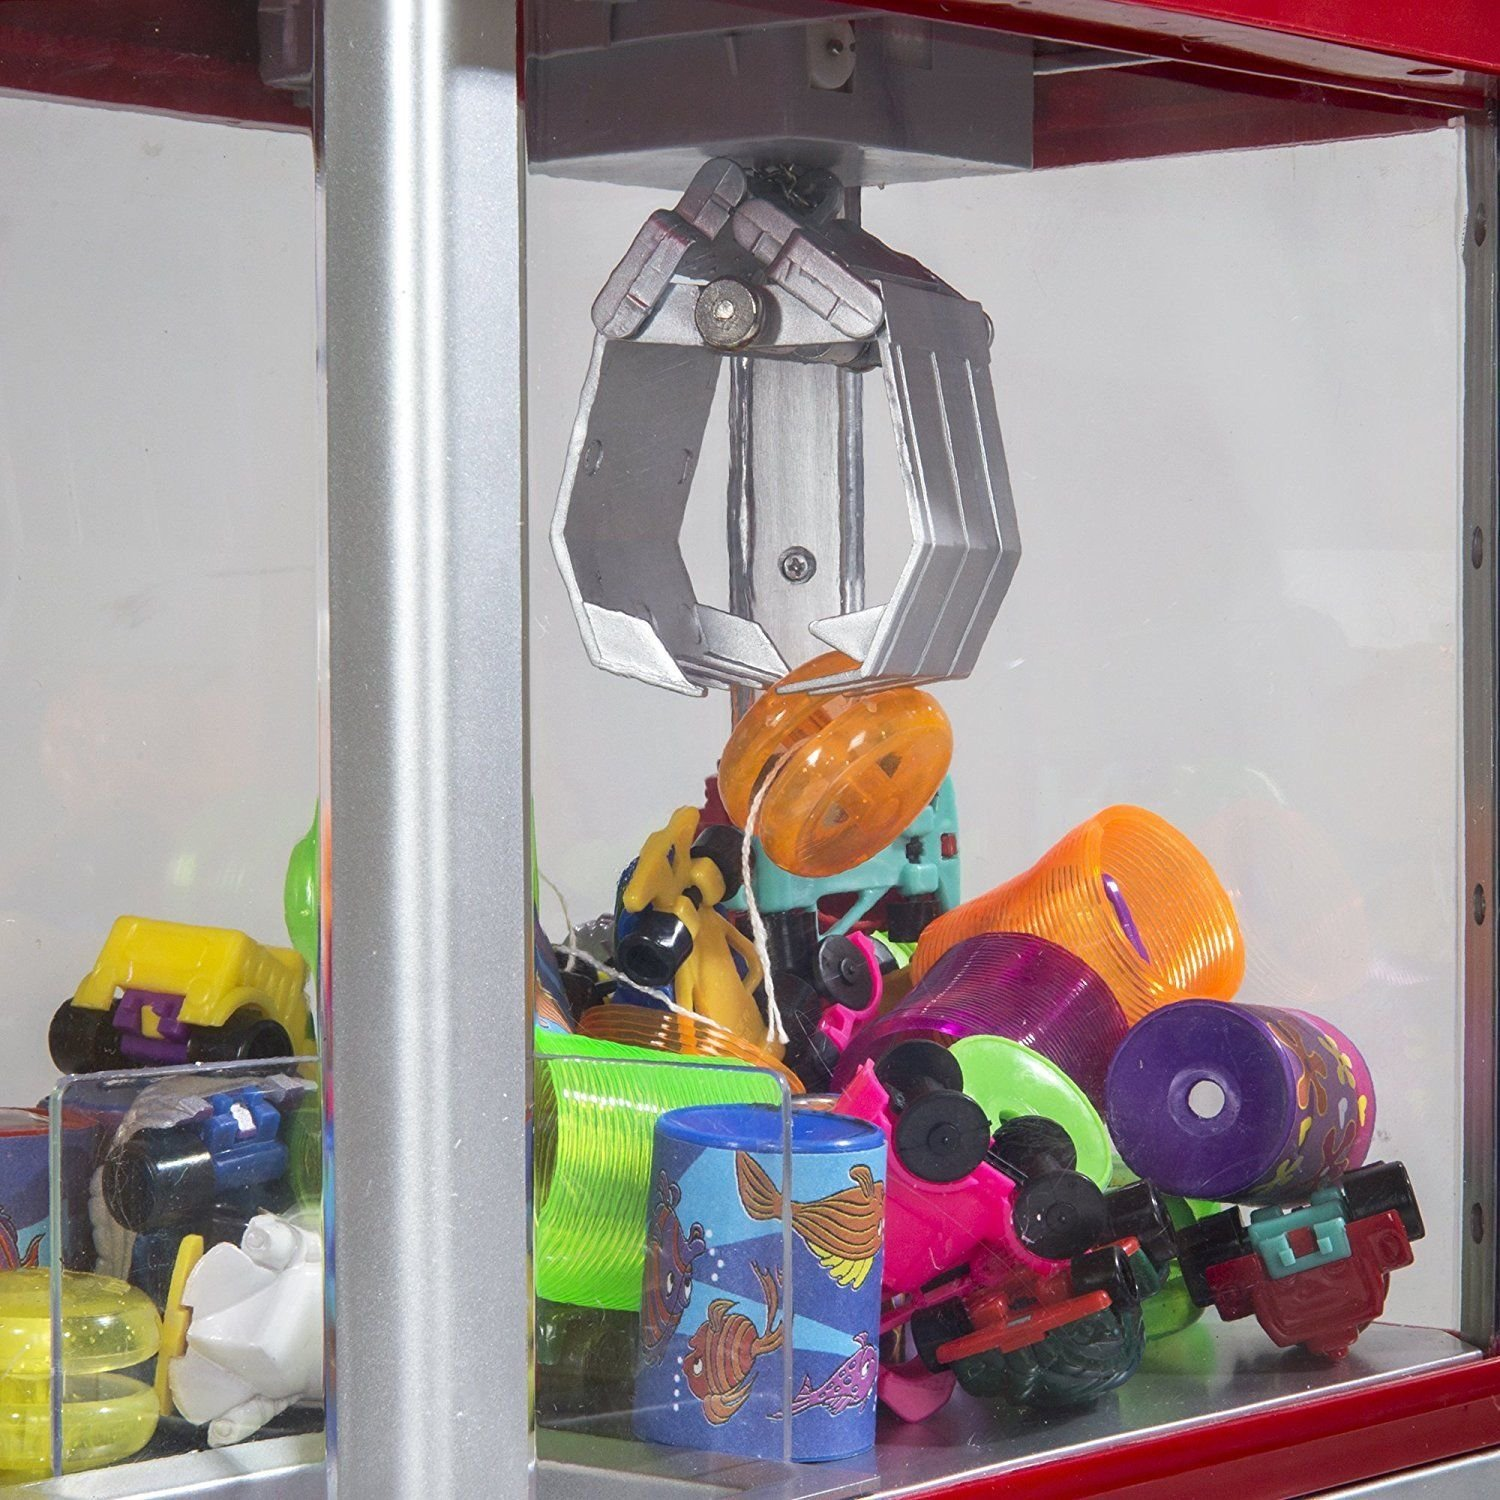 Alek...Shop Carnival Claw Game Electronic Home Arcade Toy Grabber Crane Machine Features And Exciting by Alek...Shop (Image #4)